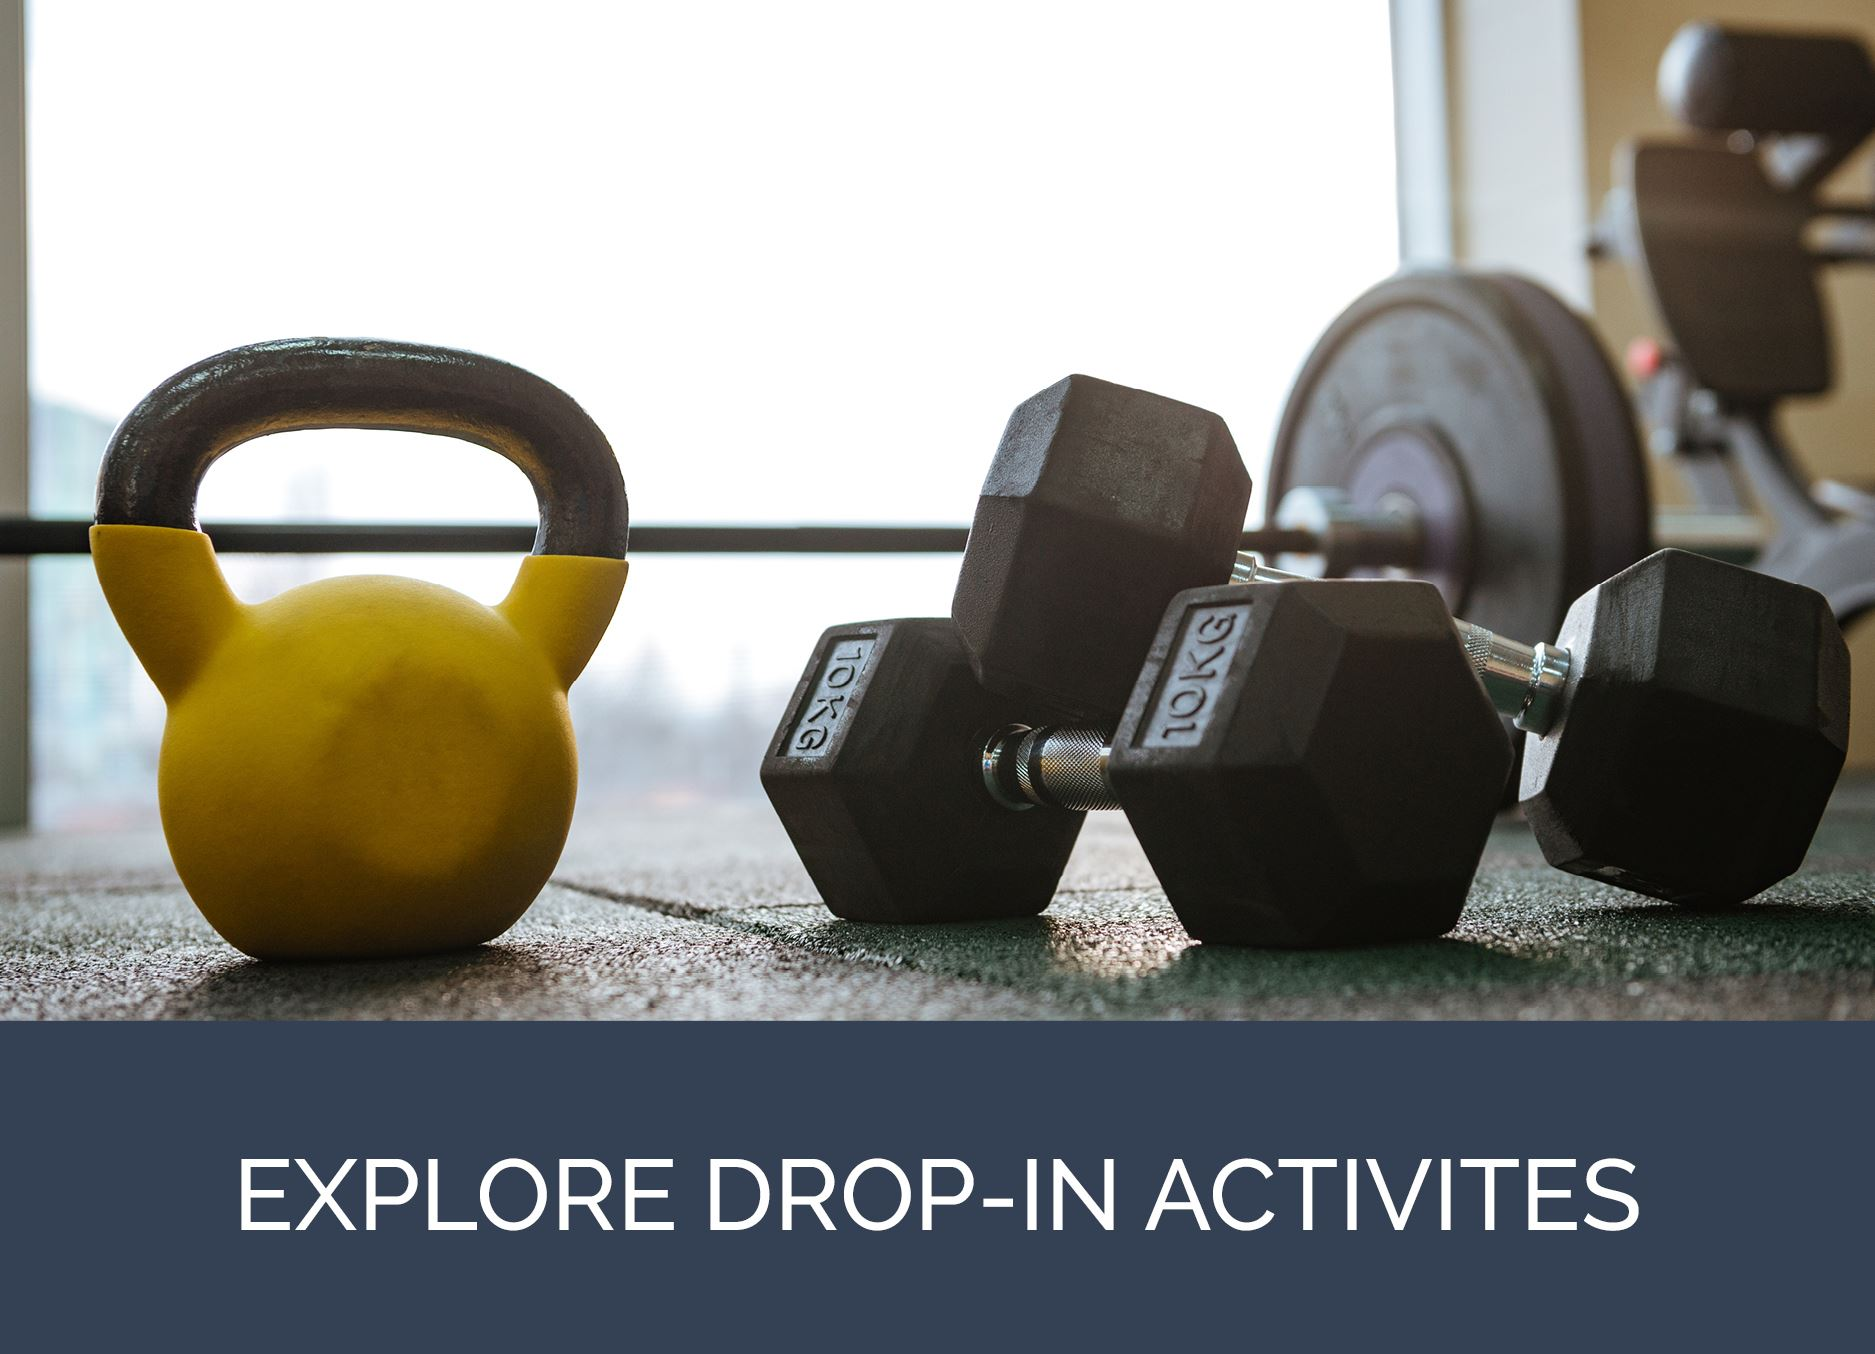 Explore Drop-In Activities